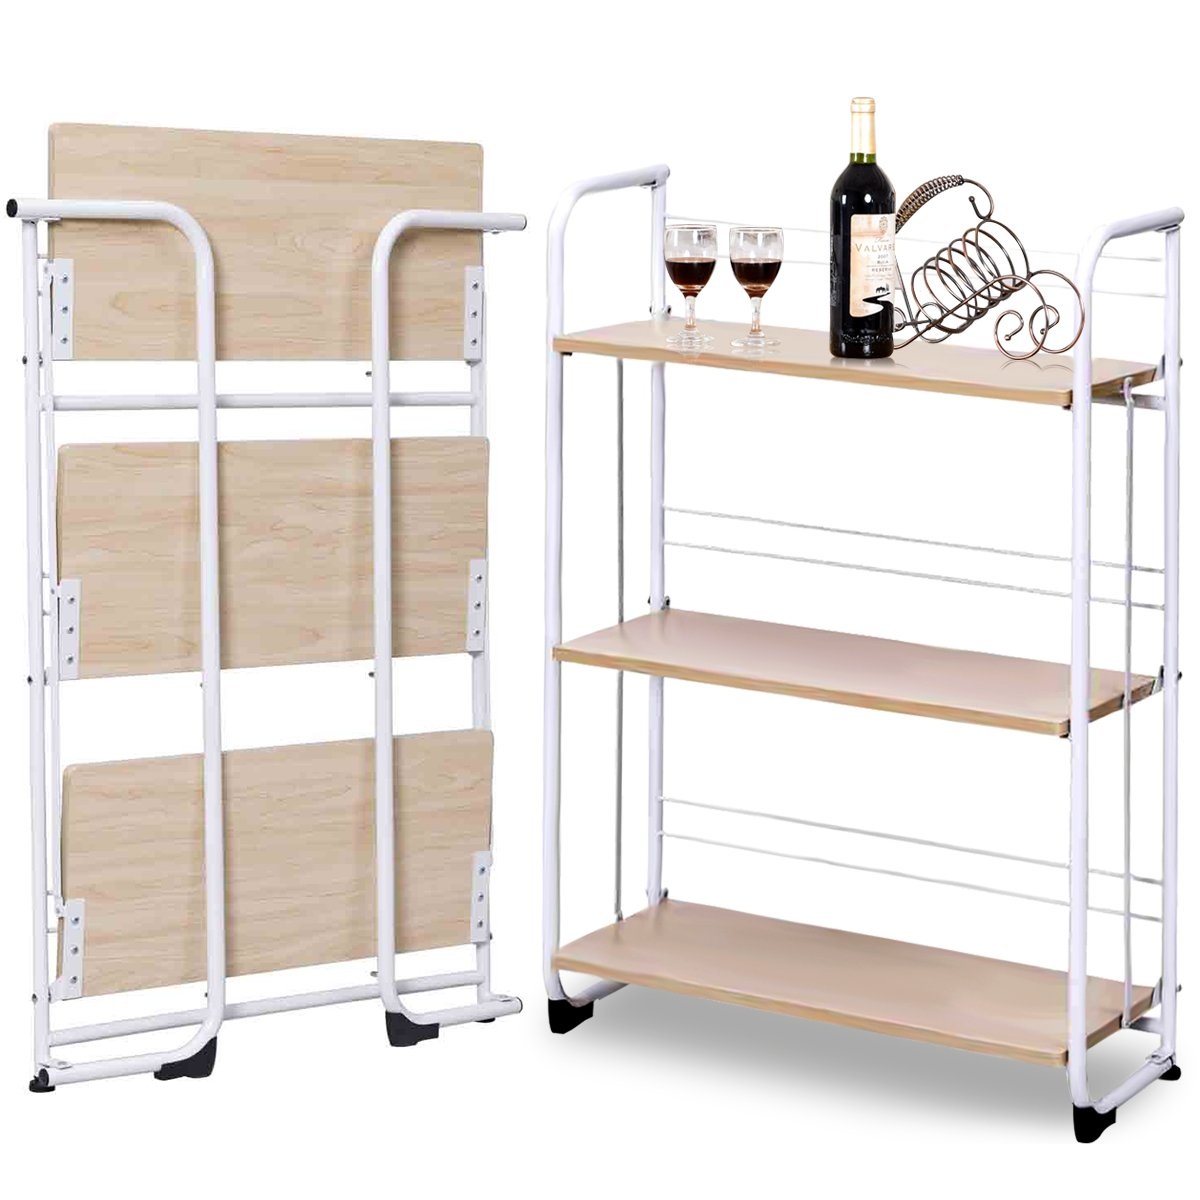 Giantex 3 Tier Folding Shelf With Rubber Feet Protect Steel Cart Foldable  Shelves Kitchen Dining Storage Cart